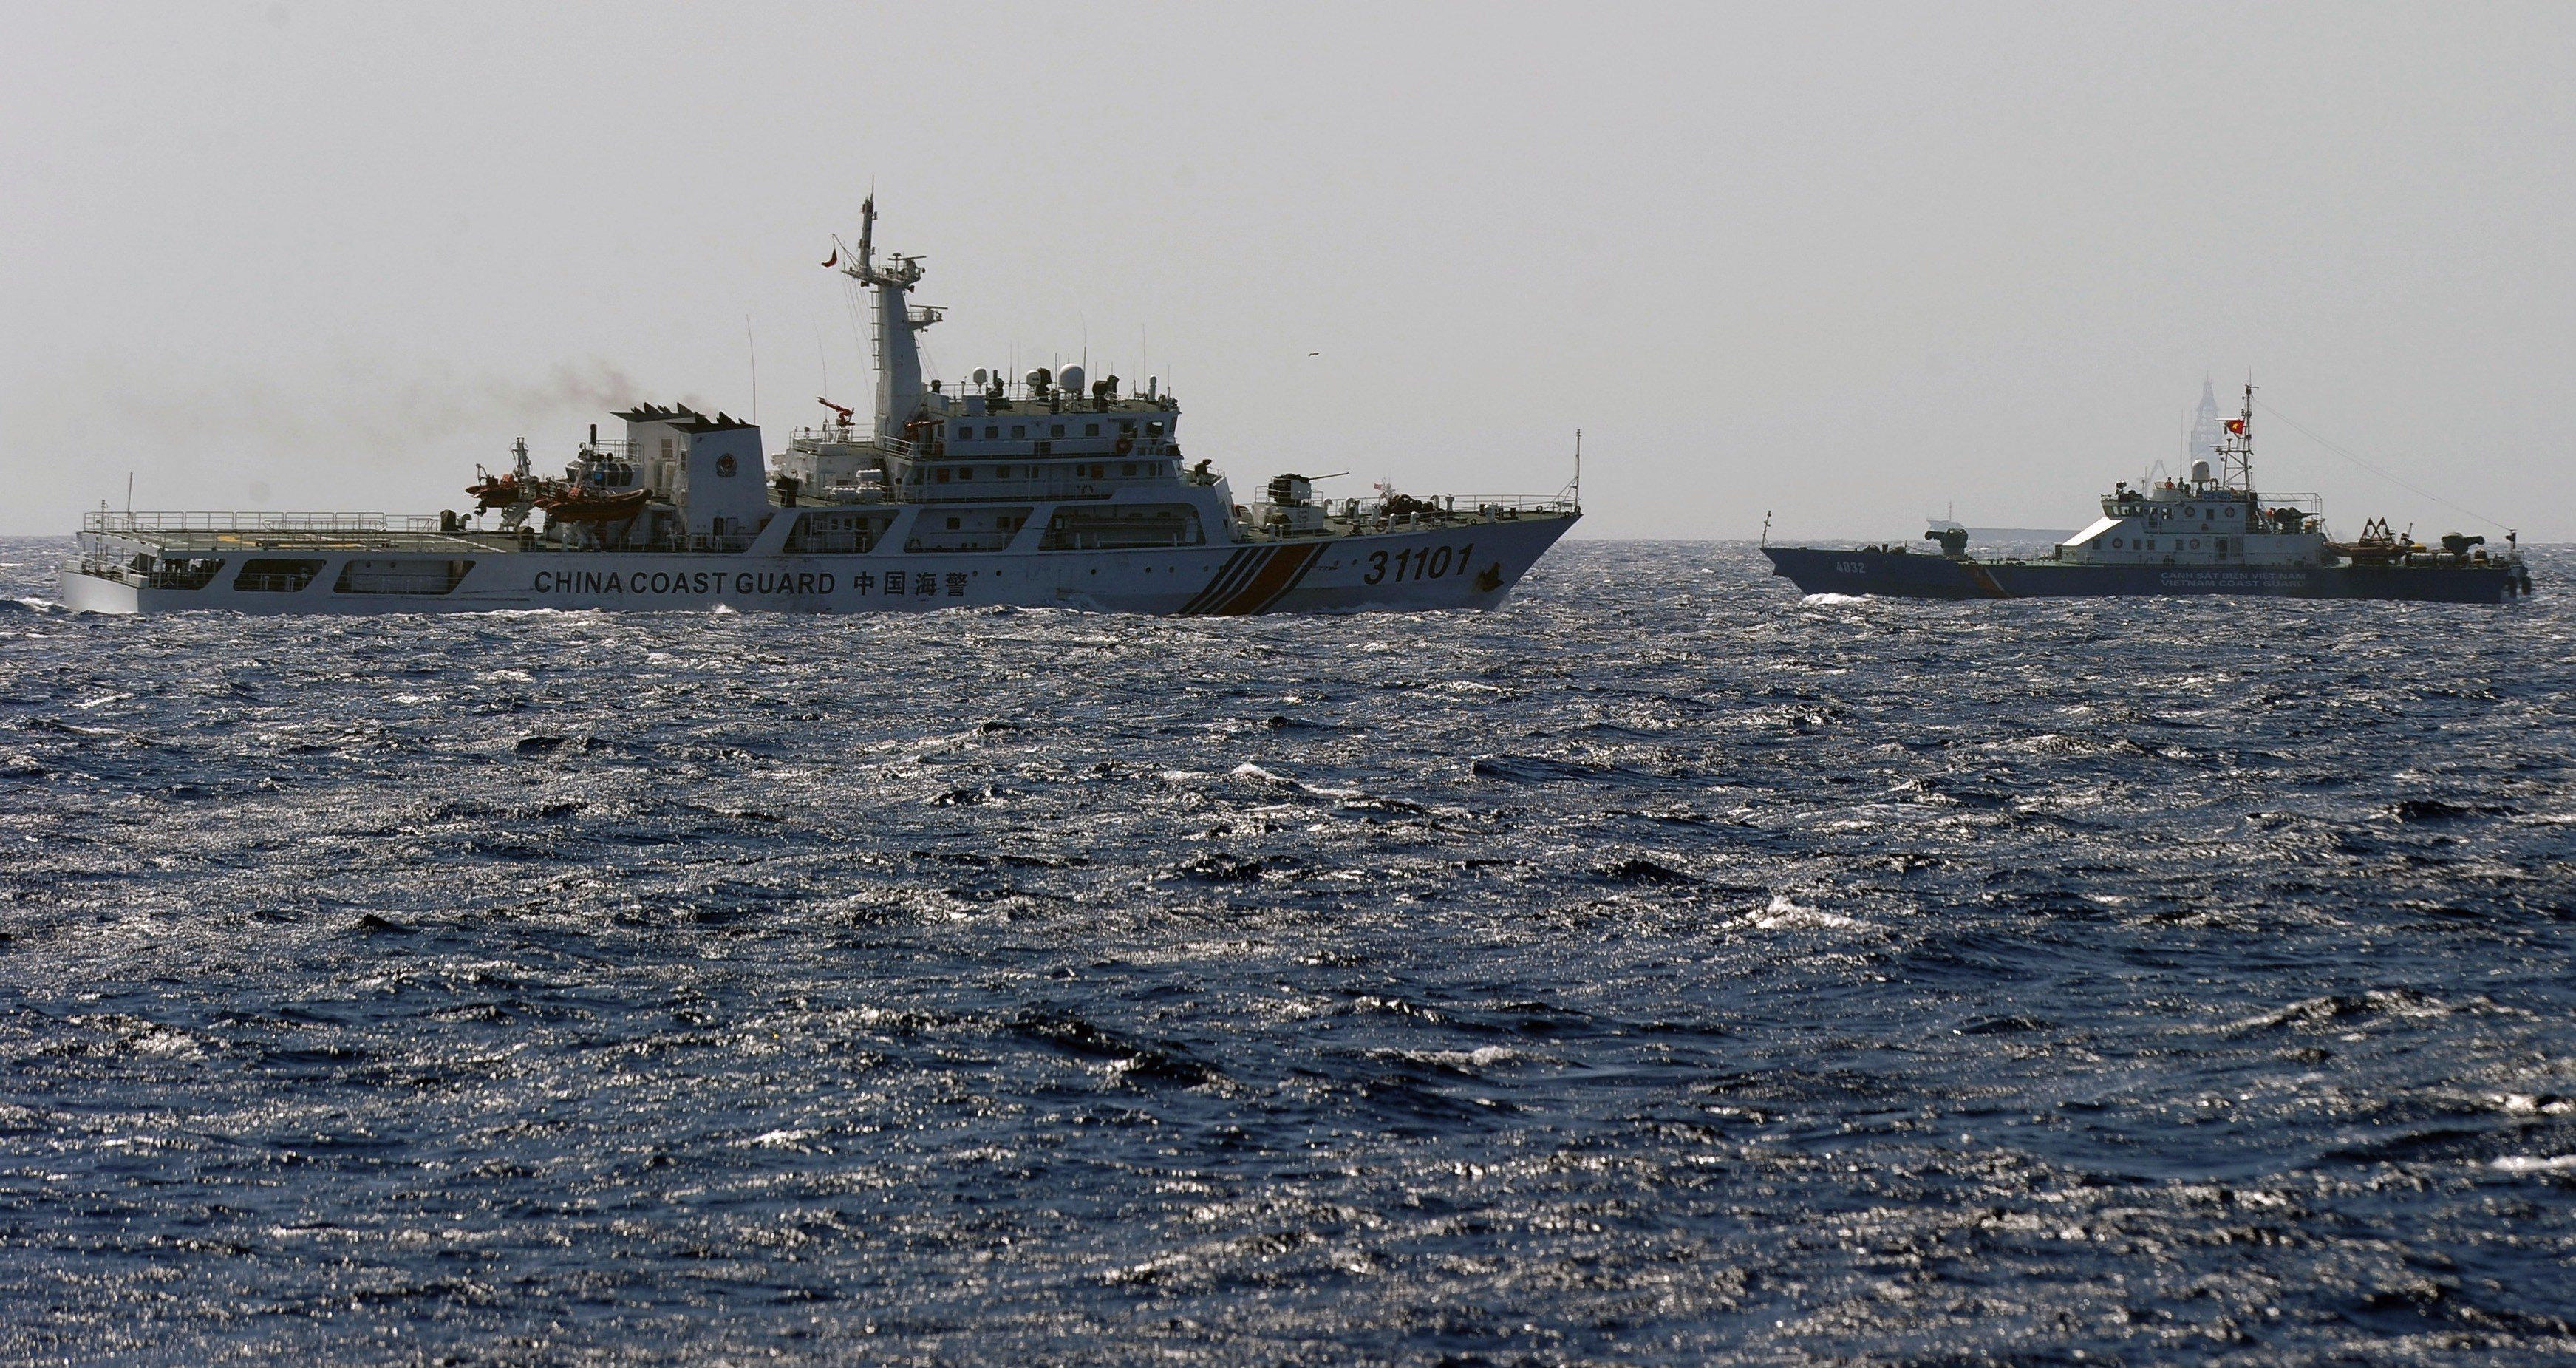 This picture taken on May 14, 2014 shows a China Coast Guard ship (L) chasing a Vietnam Coast Guard vessel near the site of a Chinese drilling oil rig in disputed waters in the South China Sea.